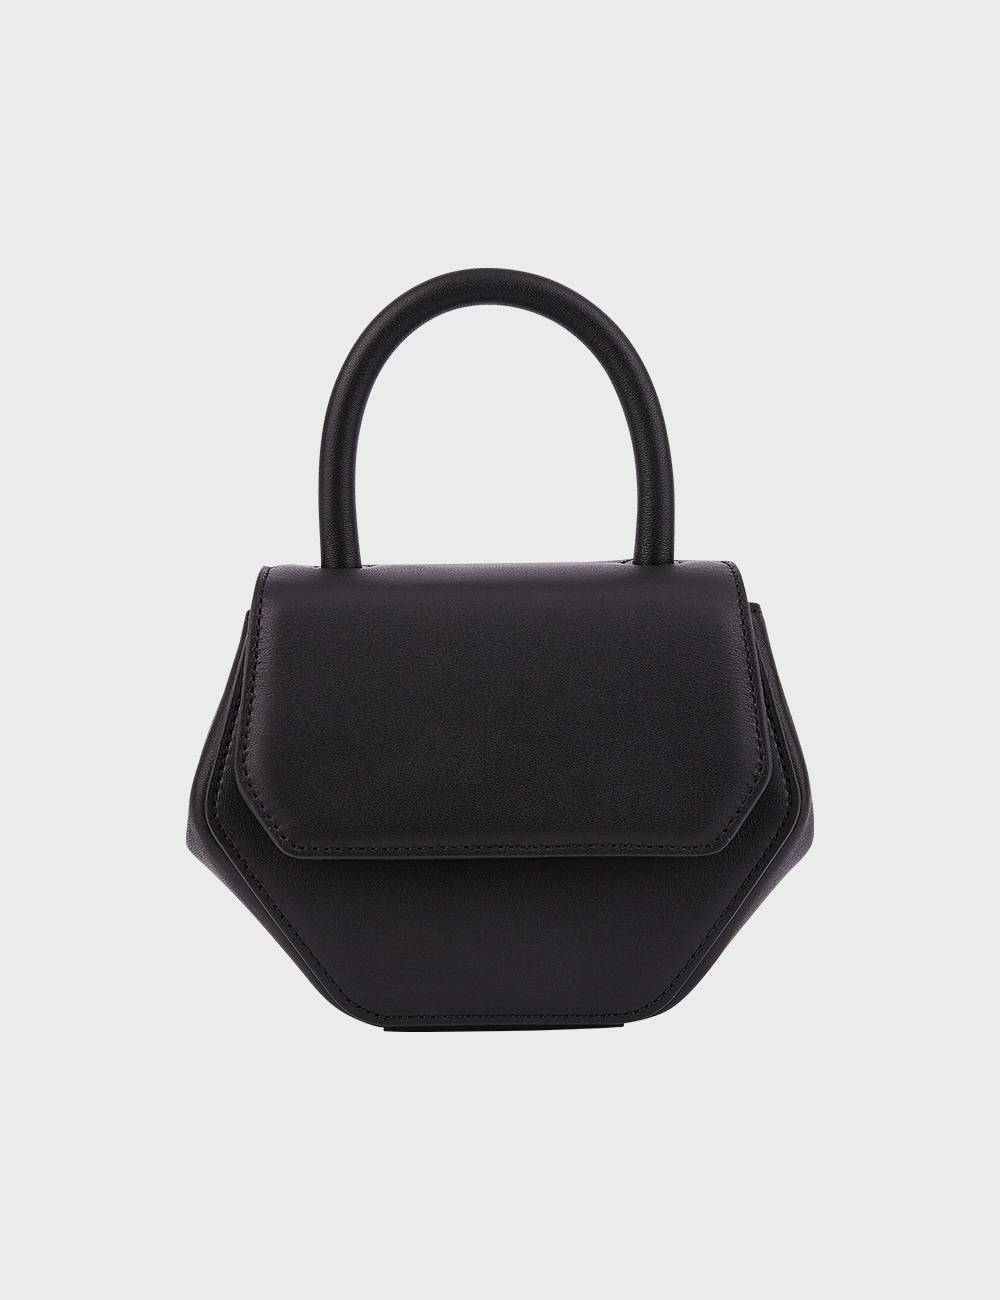 MAISON246,[혜정 착용] 246 MAGOT SMALL BAG - BLACK,No.246